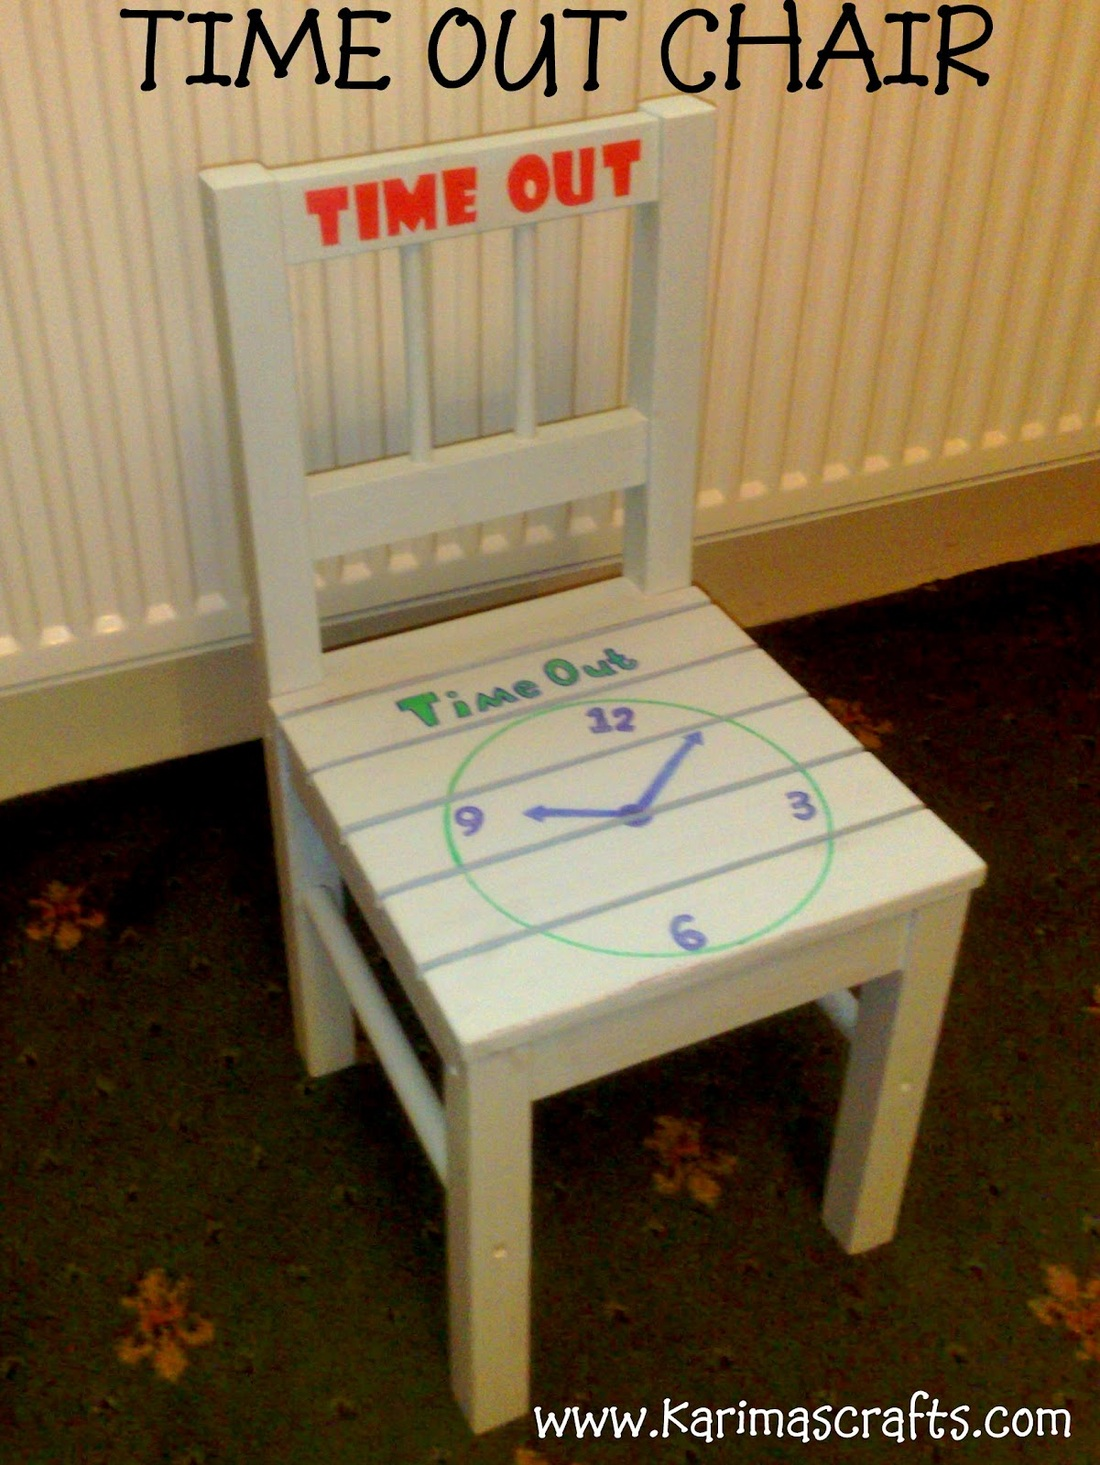 kids time out chair conference room positive responsive classroom